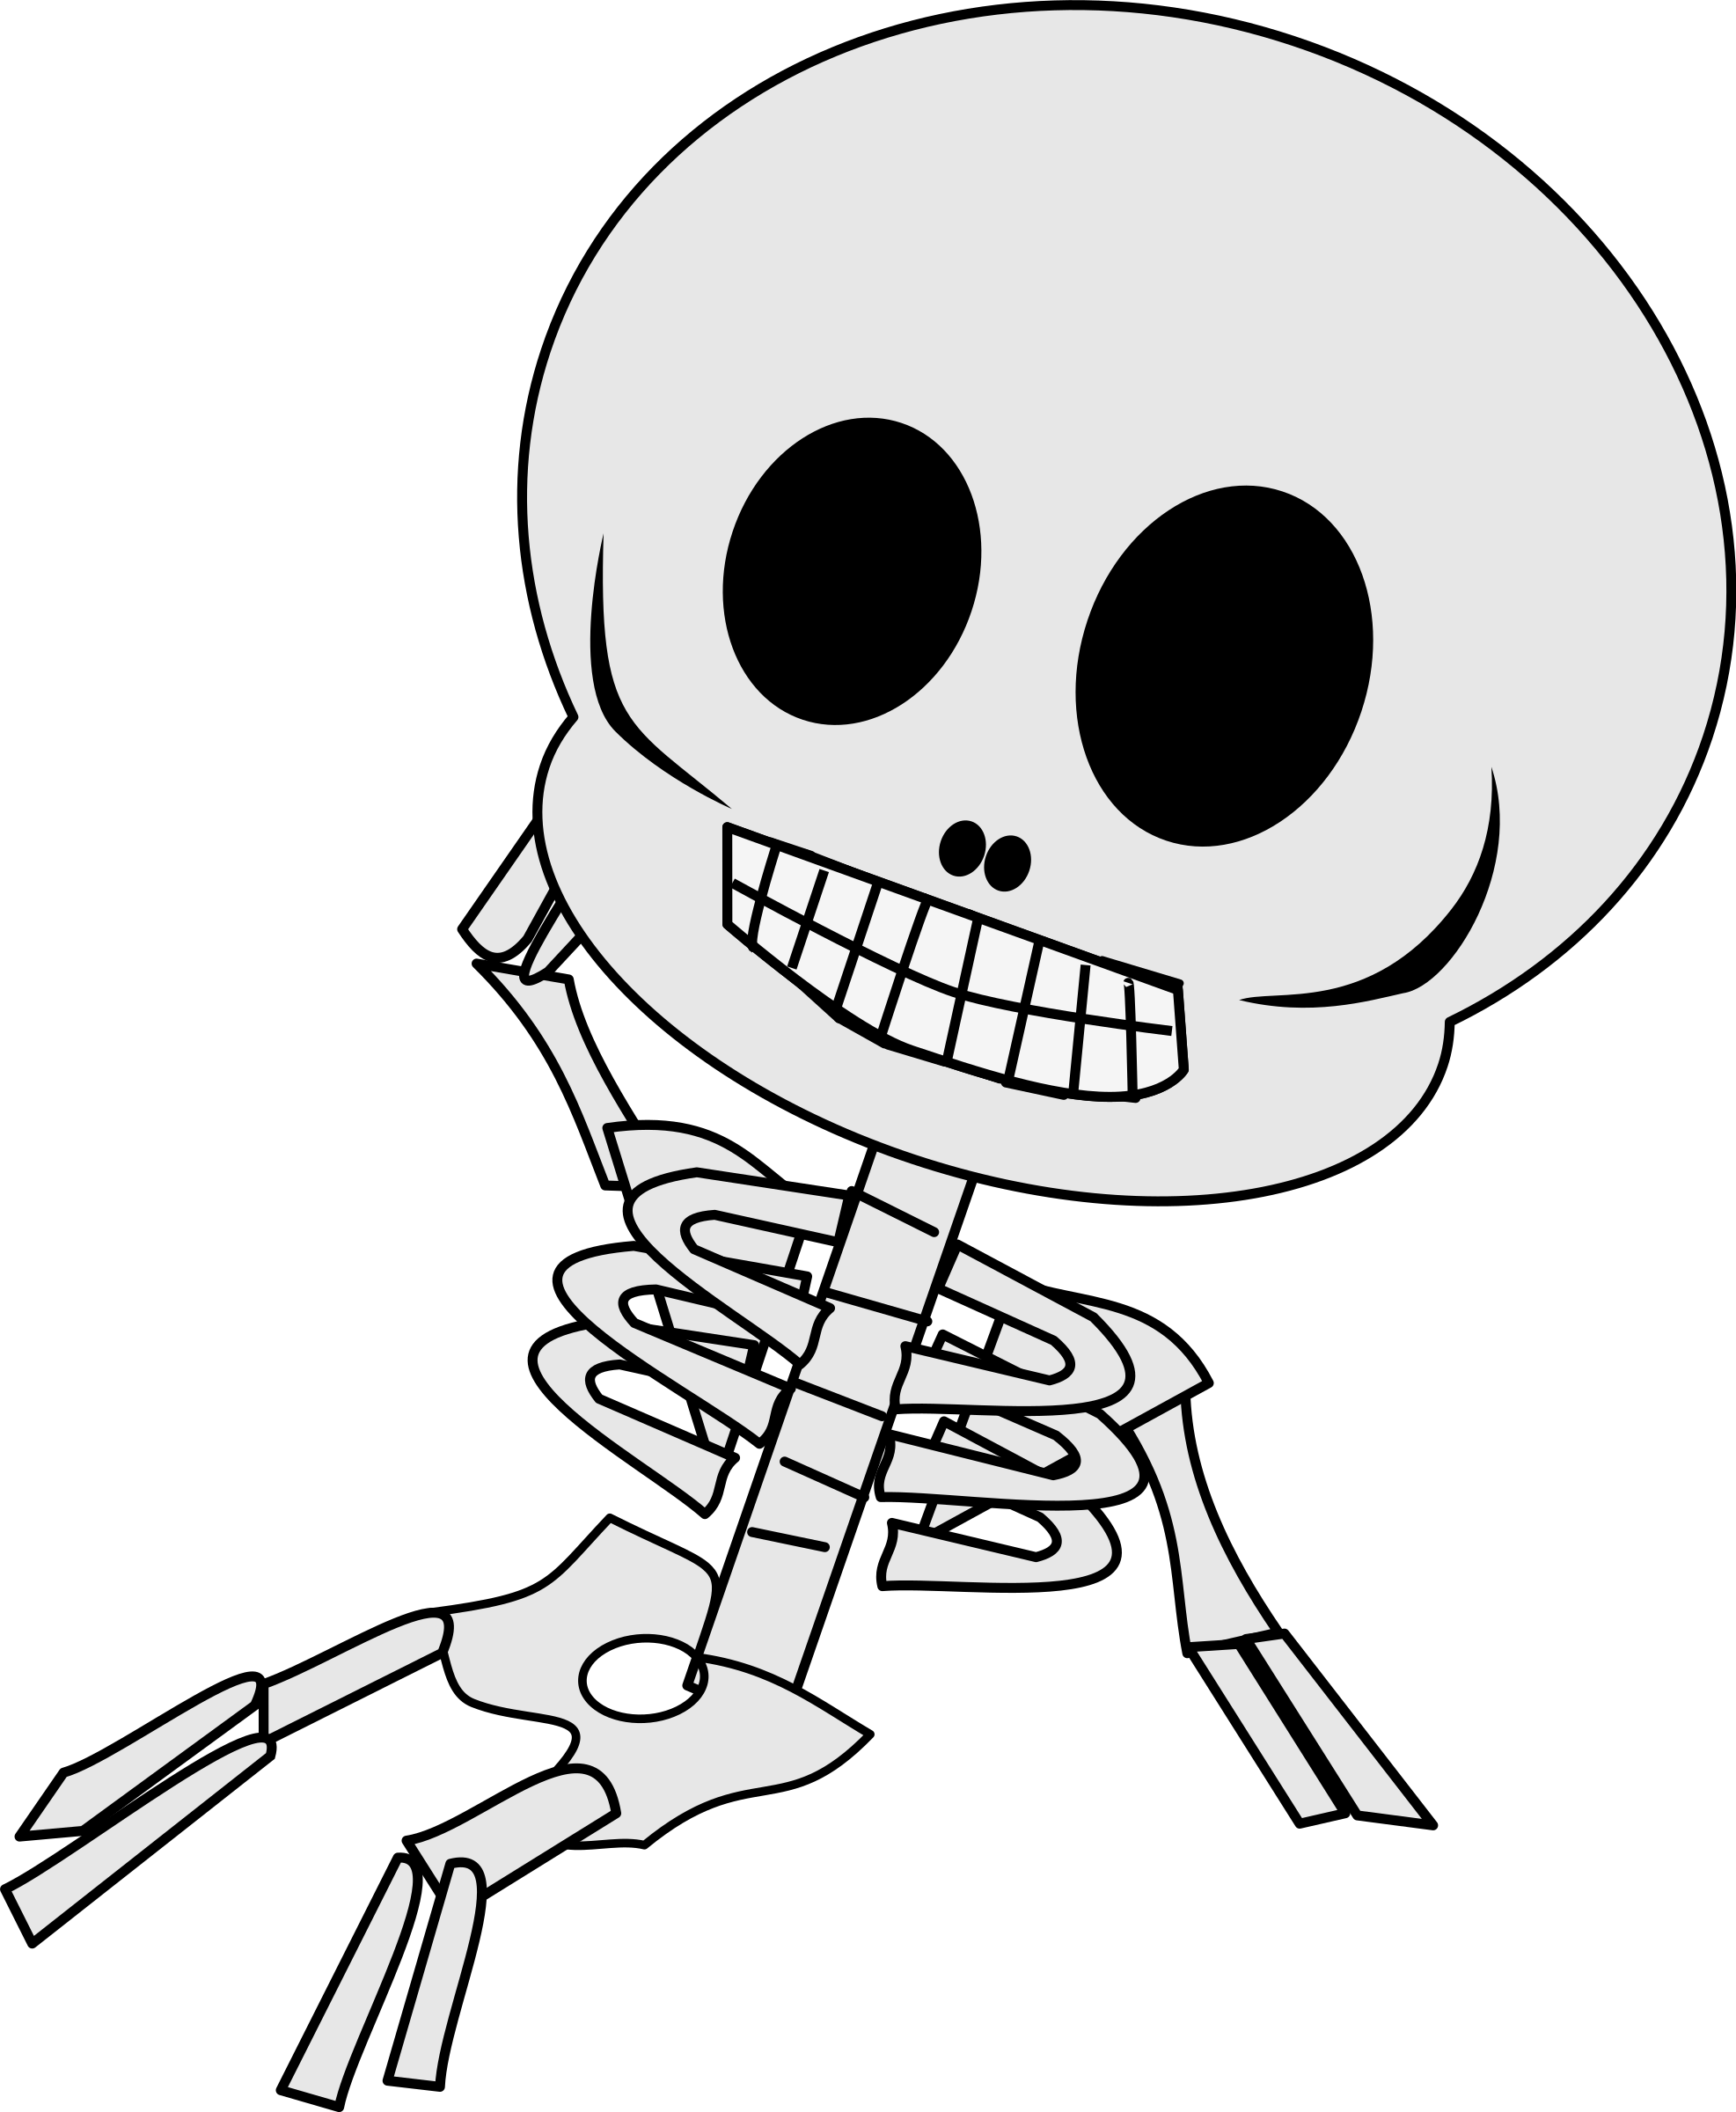 Cartoon skeleton png. Reclining icons free and